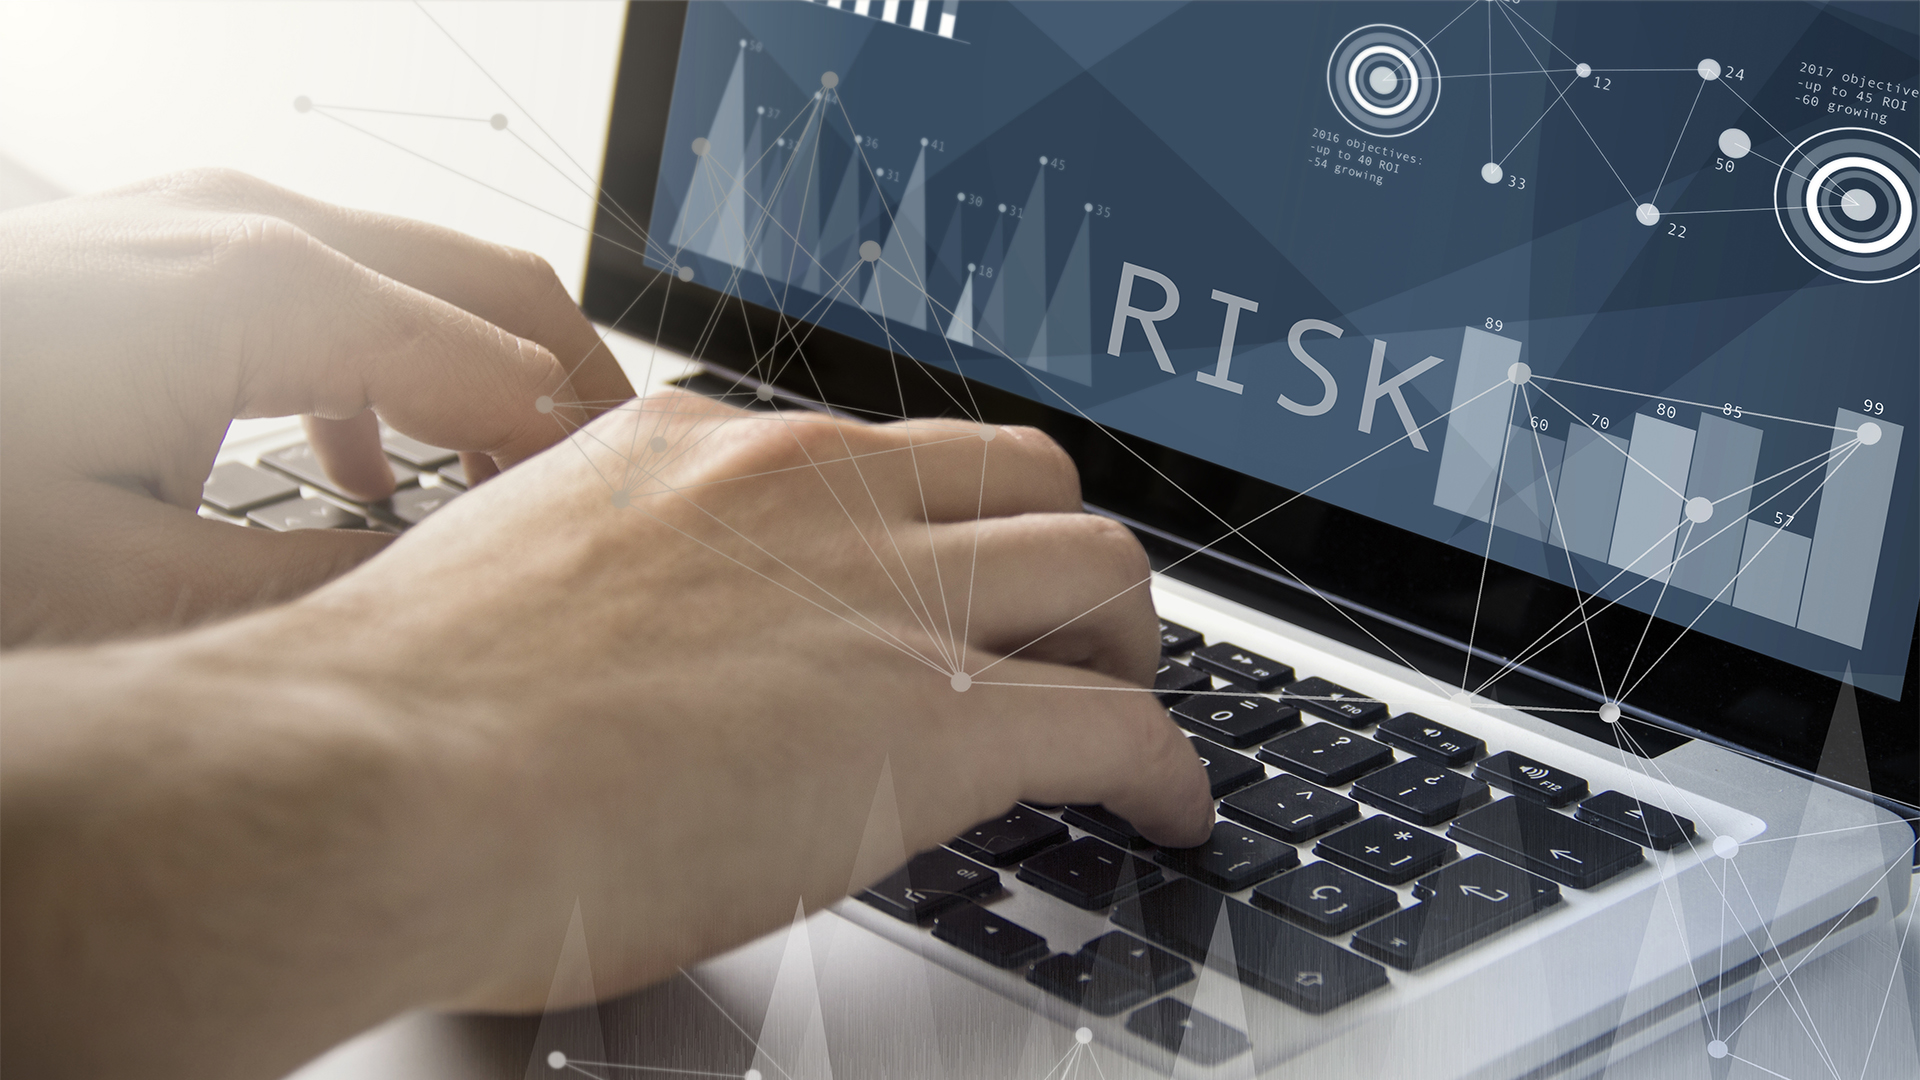 Individual typing on laptop that is displaying risk analytics